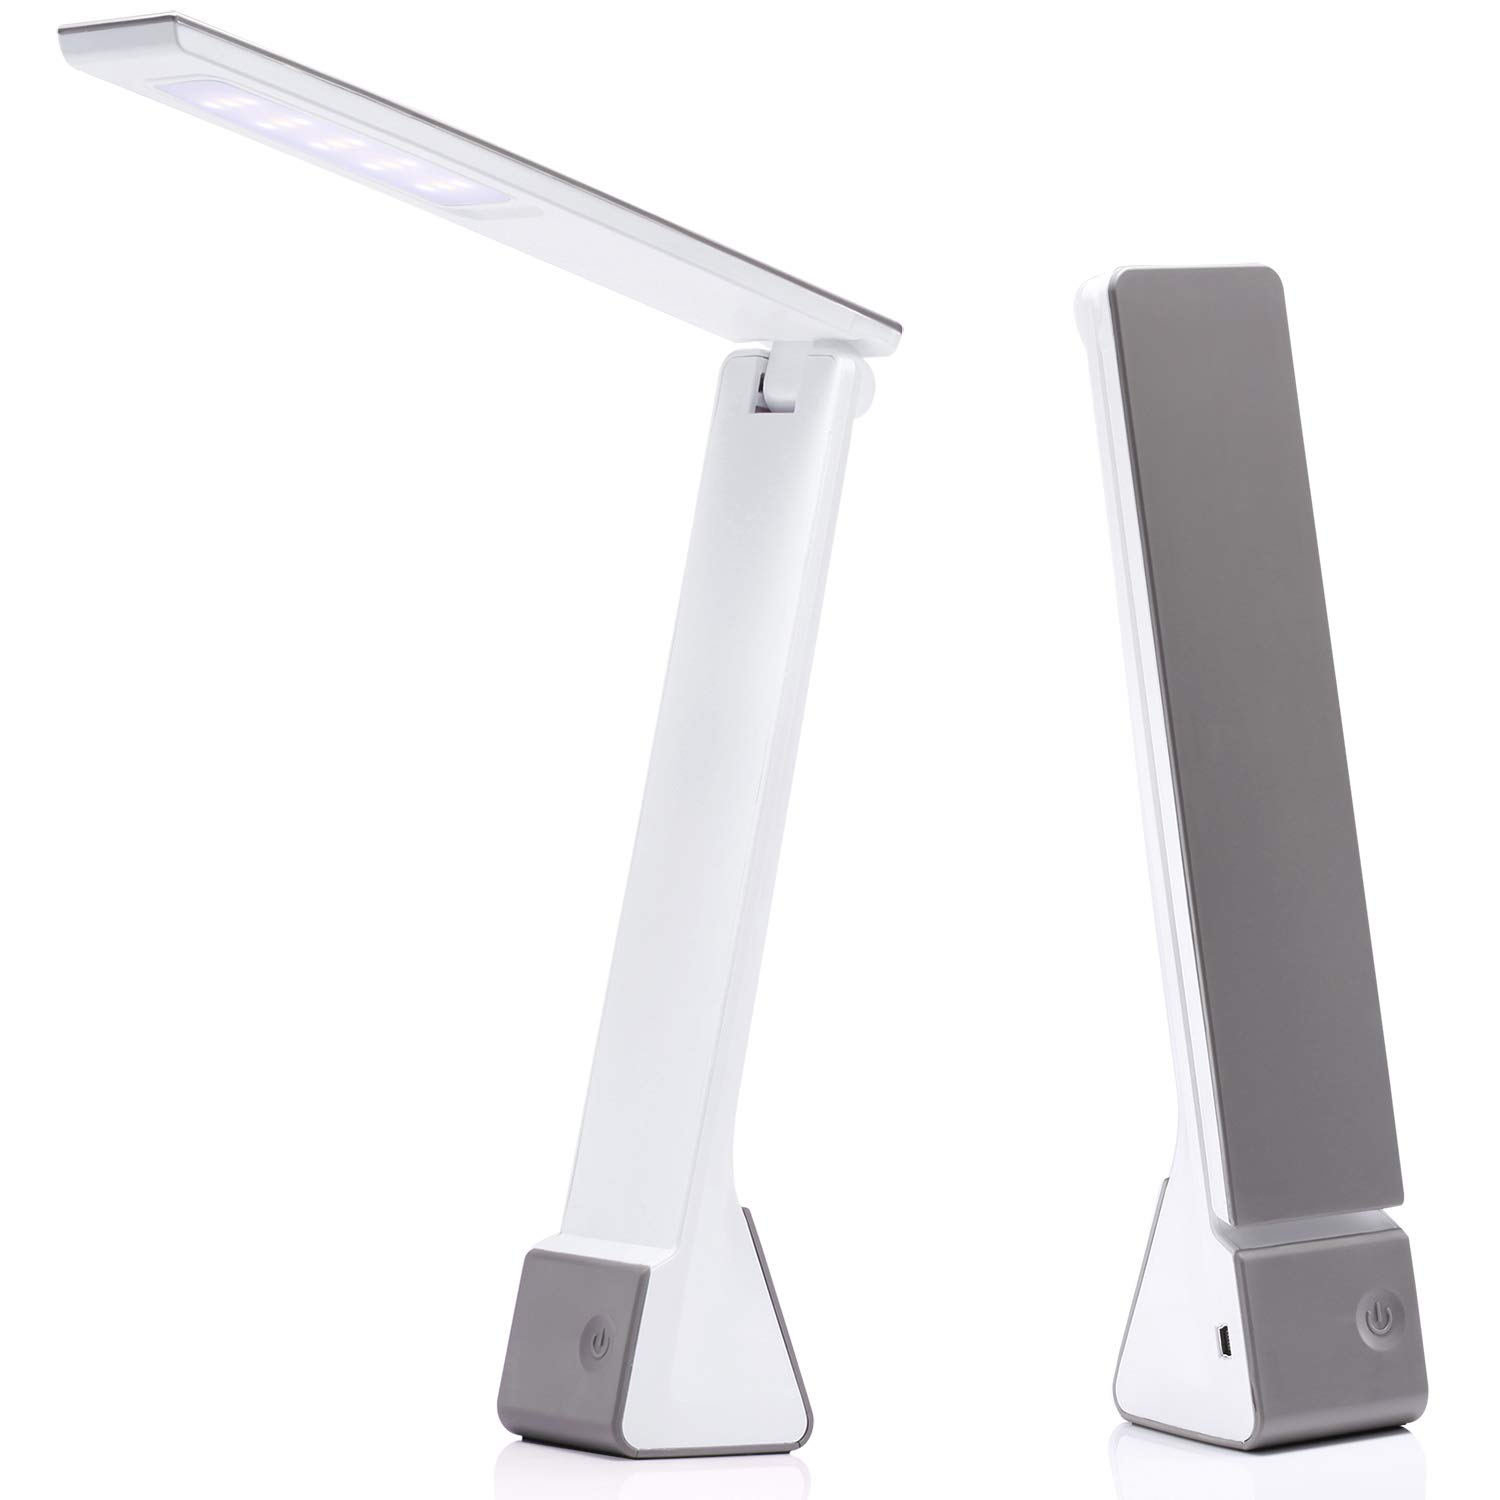 AVAWAY Dimmable Desk Lamp LED Portable Table Light